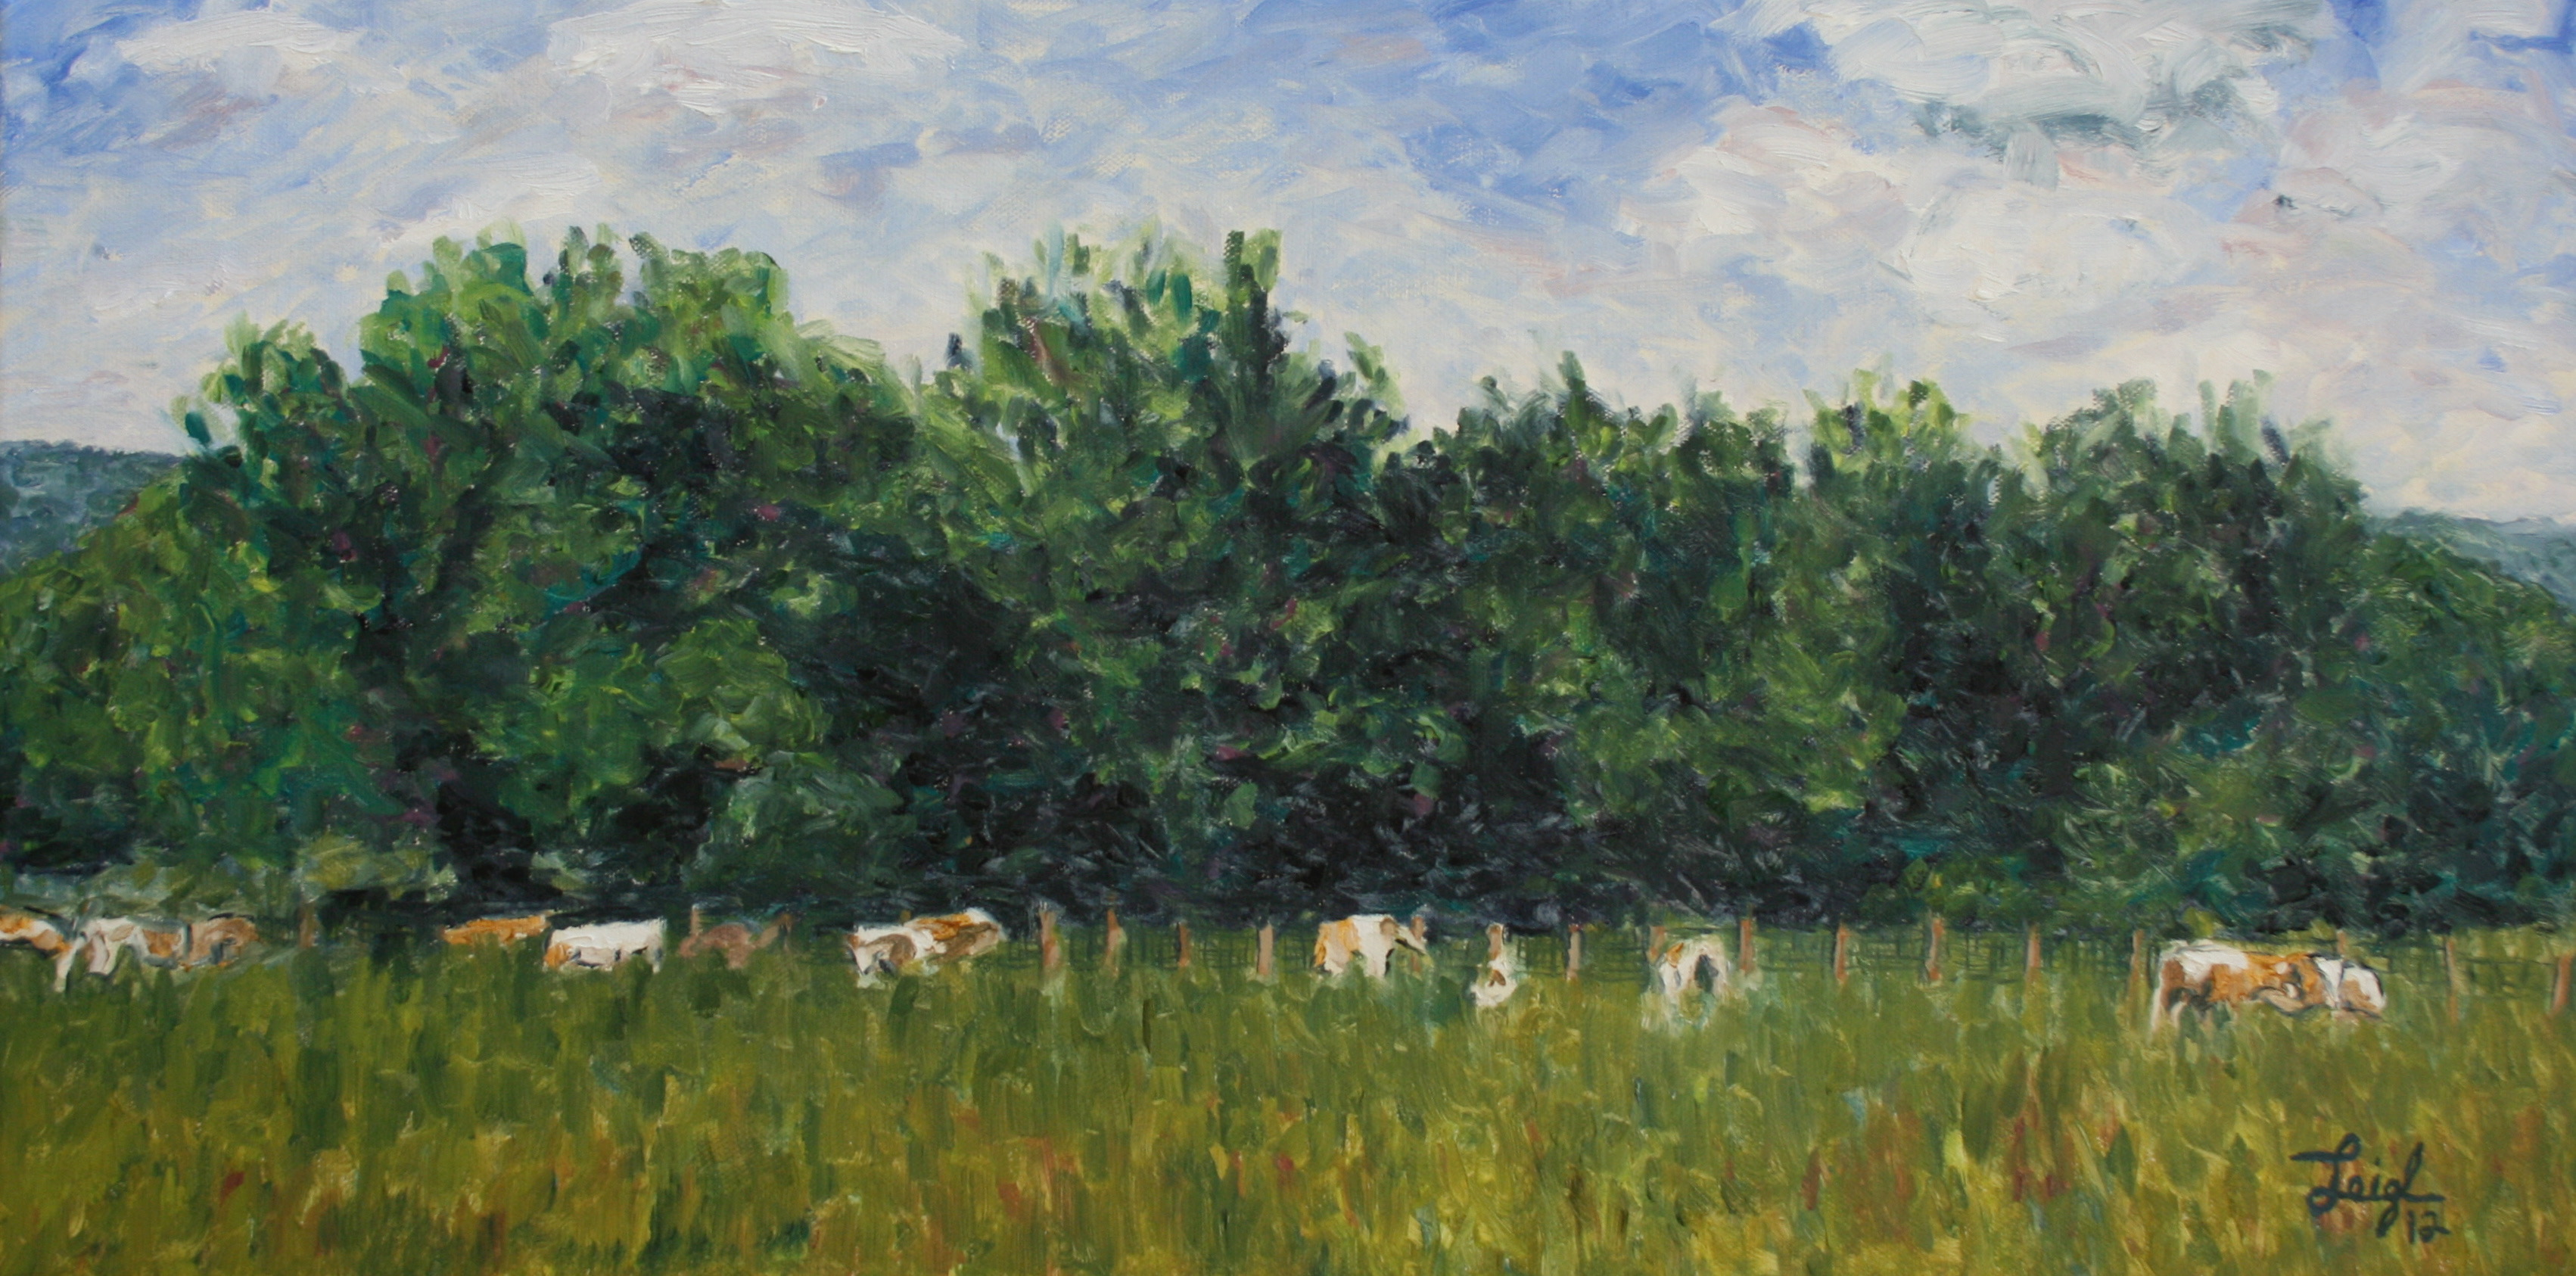 Cows at Argenteuil  ~   Cynthia Copeland & Greg Spiegal. Pasadena, CA 2012 • 24 x 12